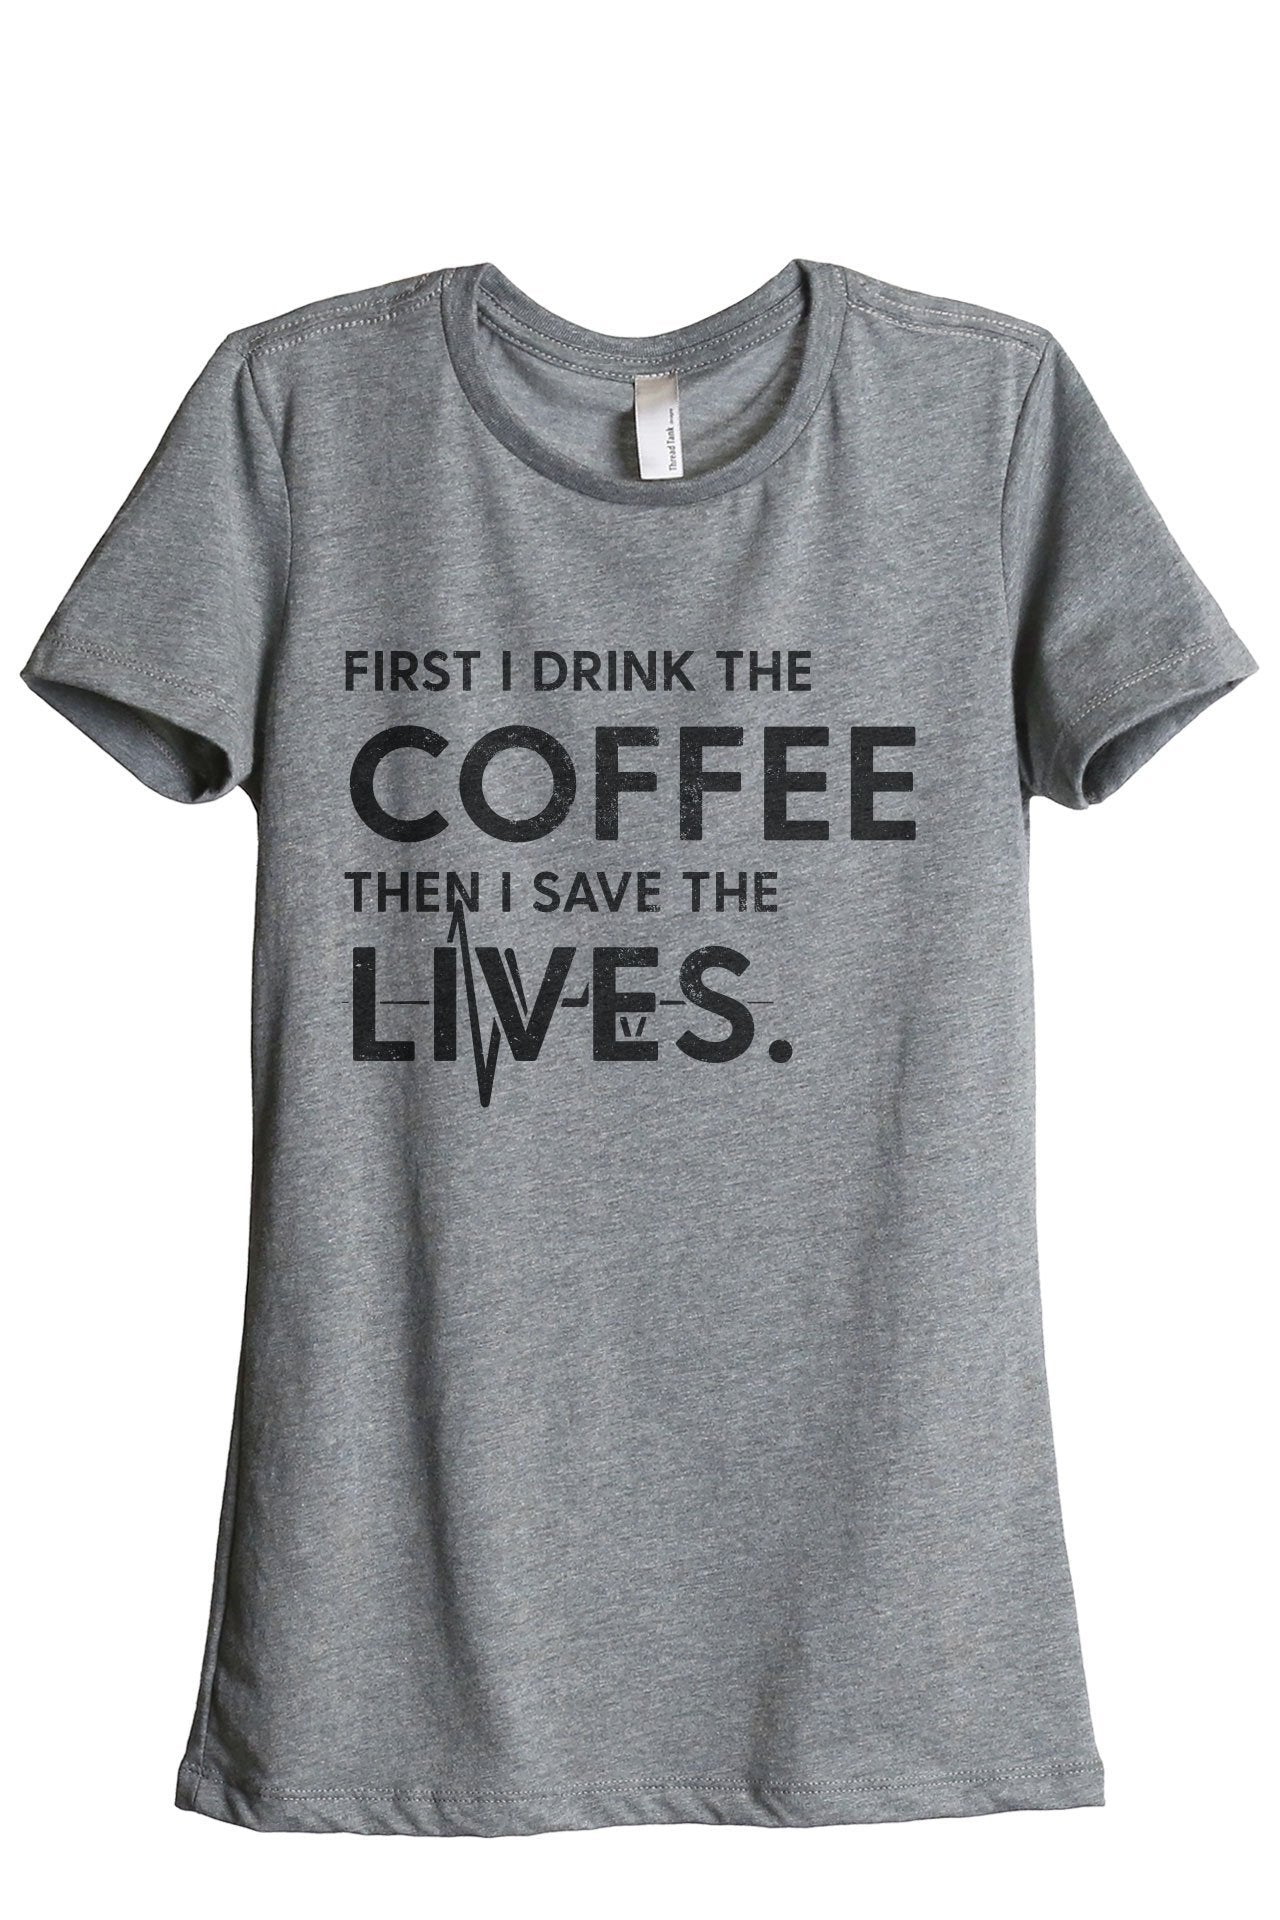 First I Drink The Coffee Then I Save The Lives Women's Relaxed Crewneck T-Shirt Top Tee Heather Grey